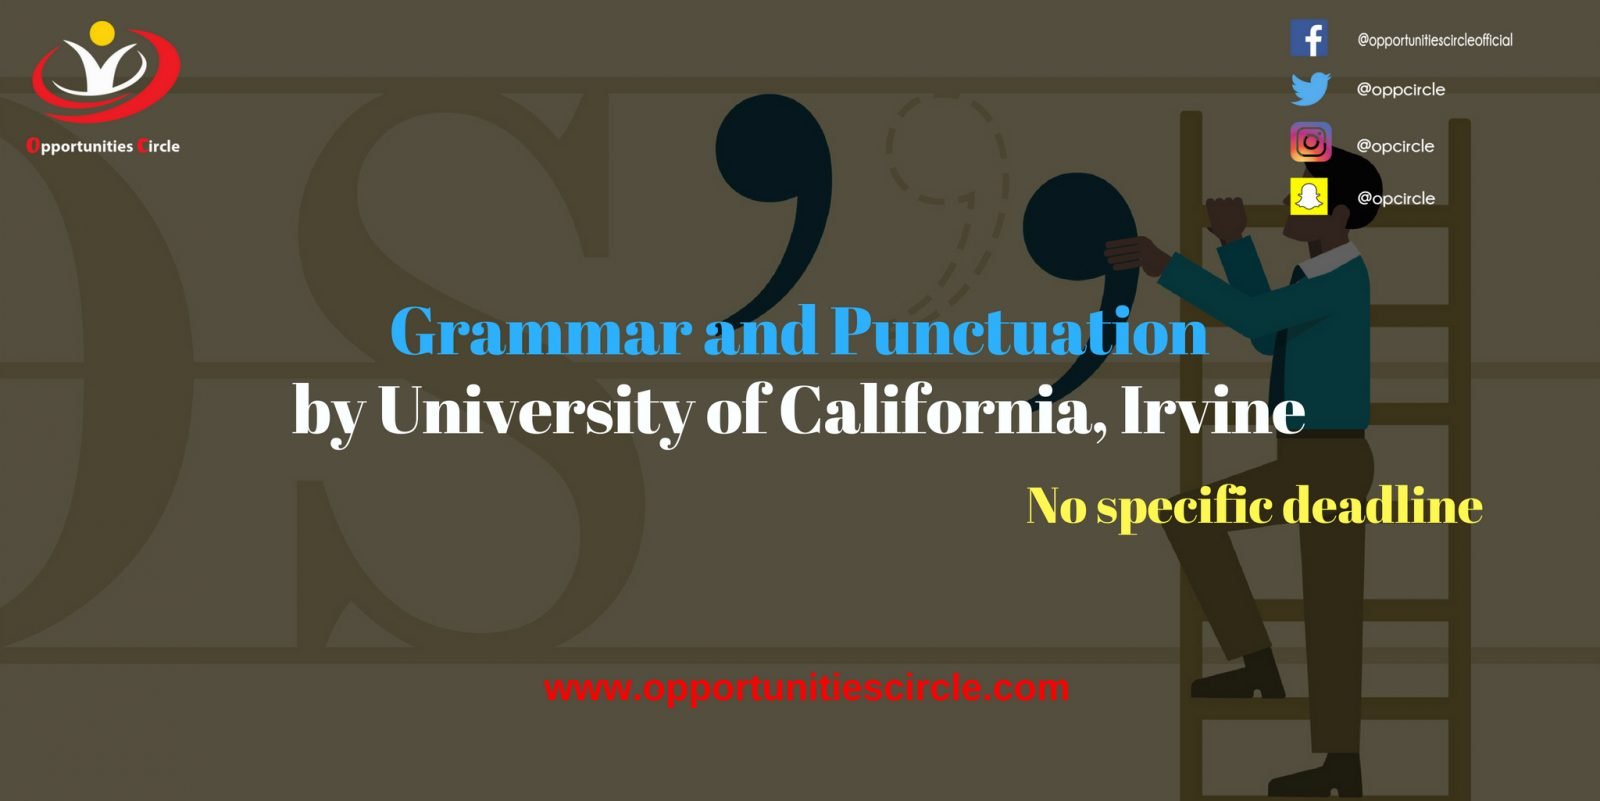 Grammar and Punctuation by University of California - Grammar and Punctuation by University of California, Irvine